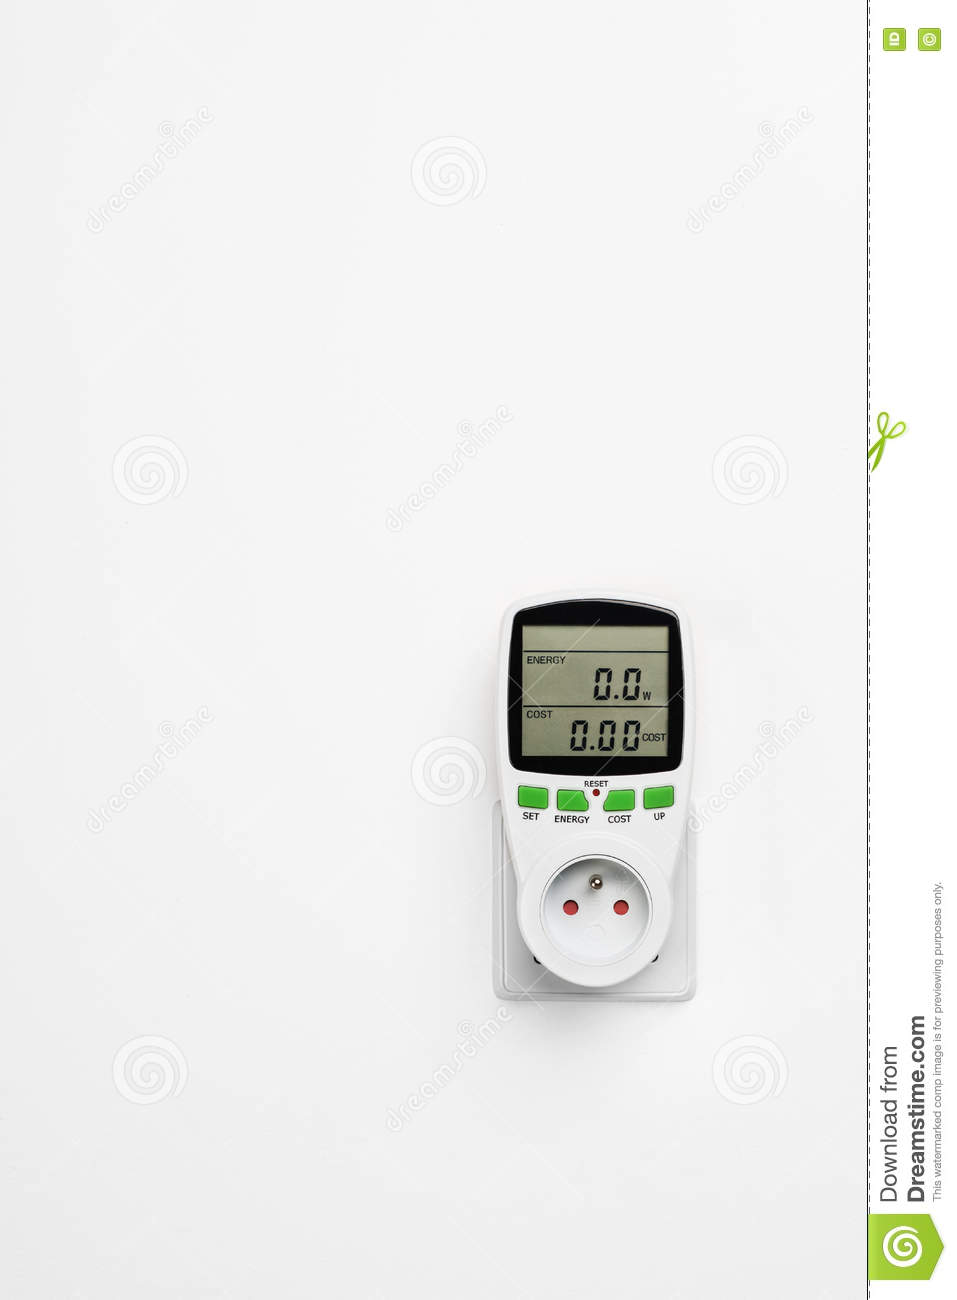 Power Meter Cartoon : Power consumption royalty free stock photography